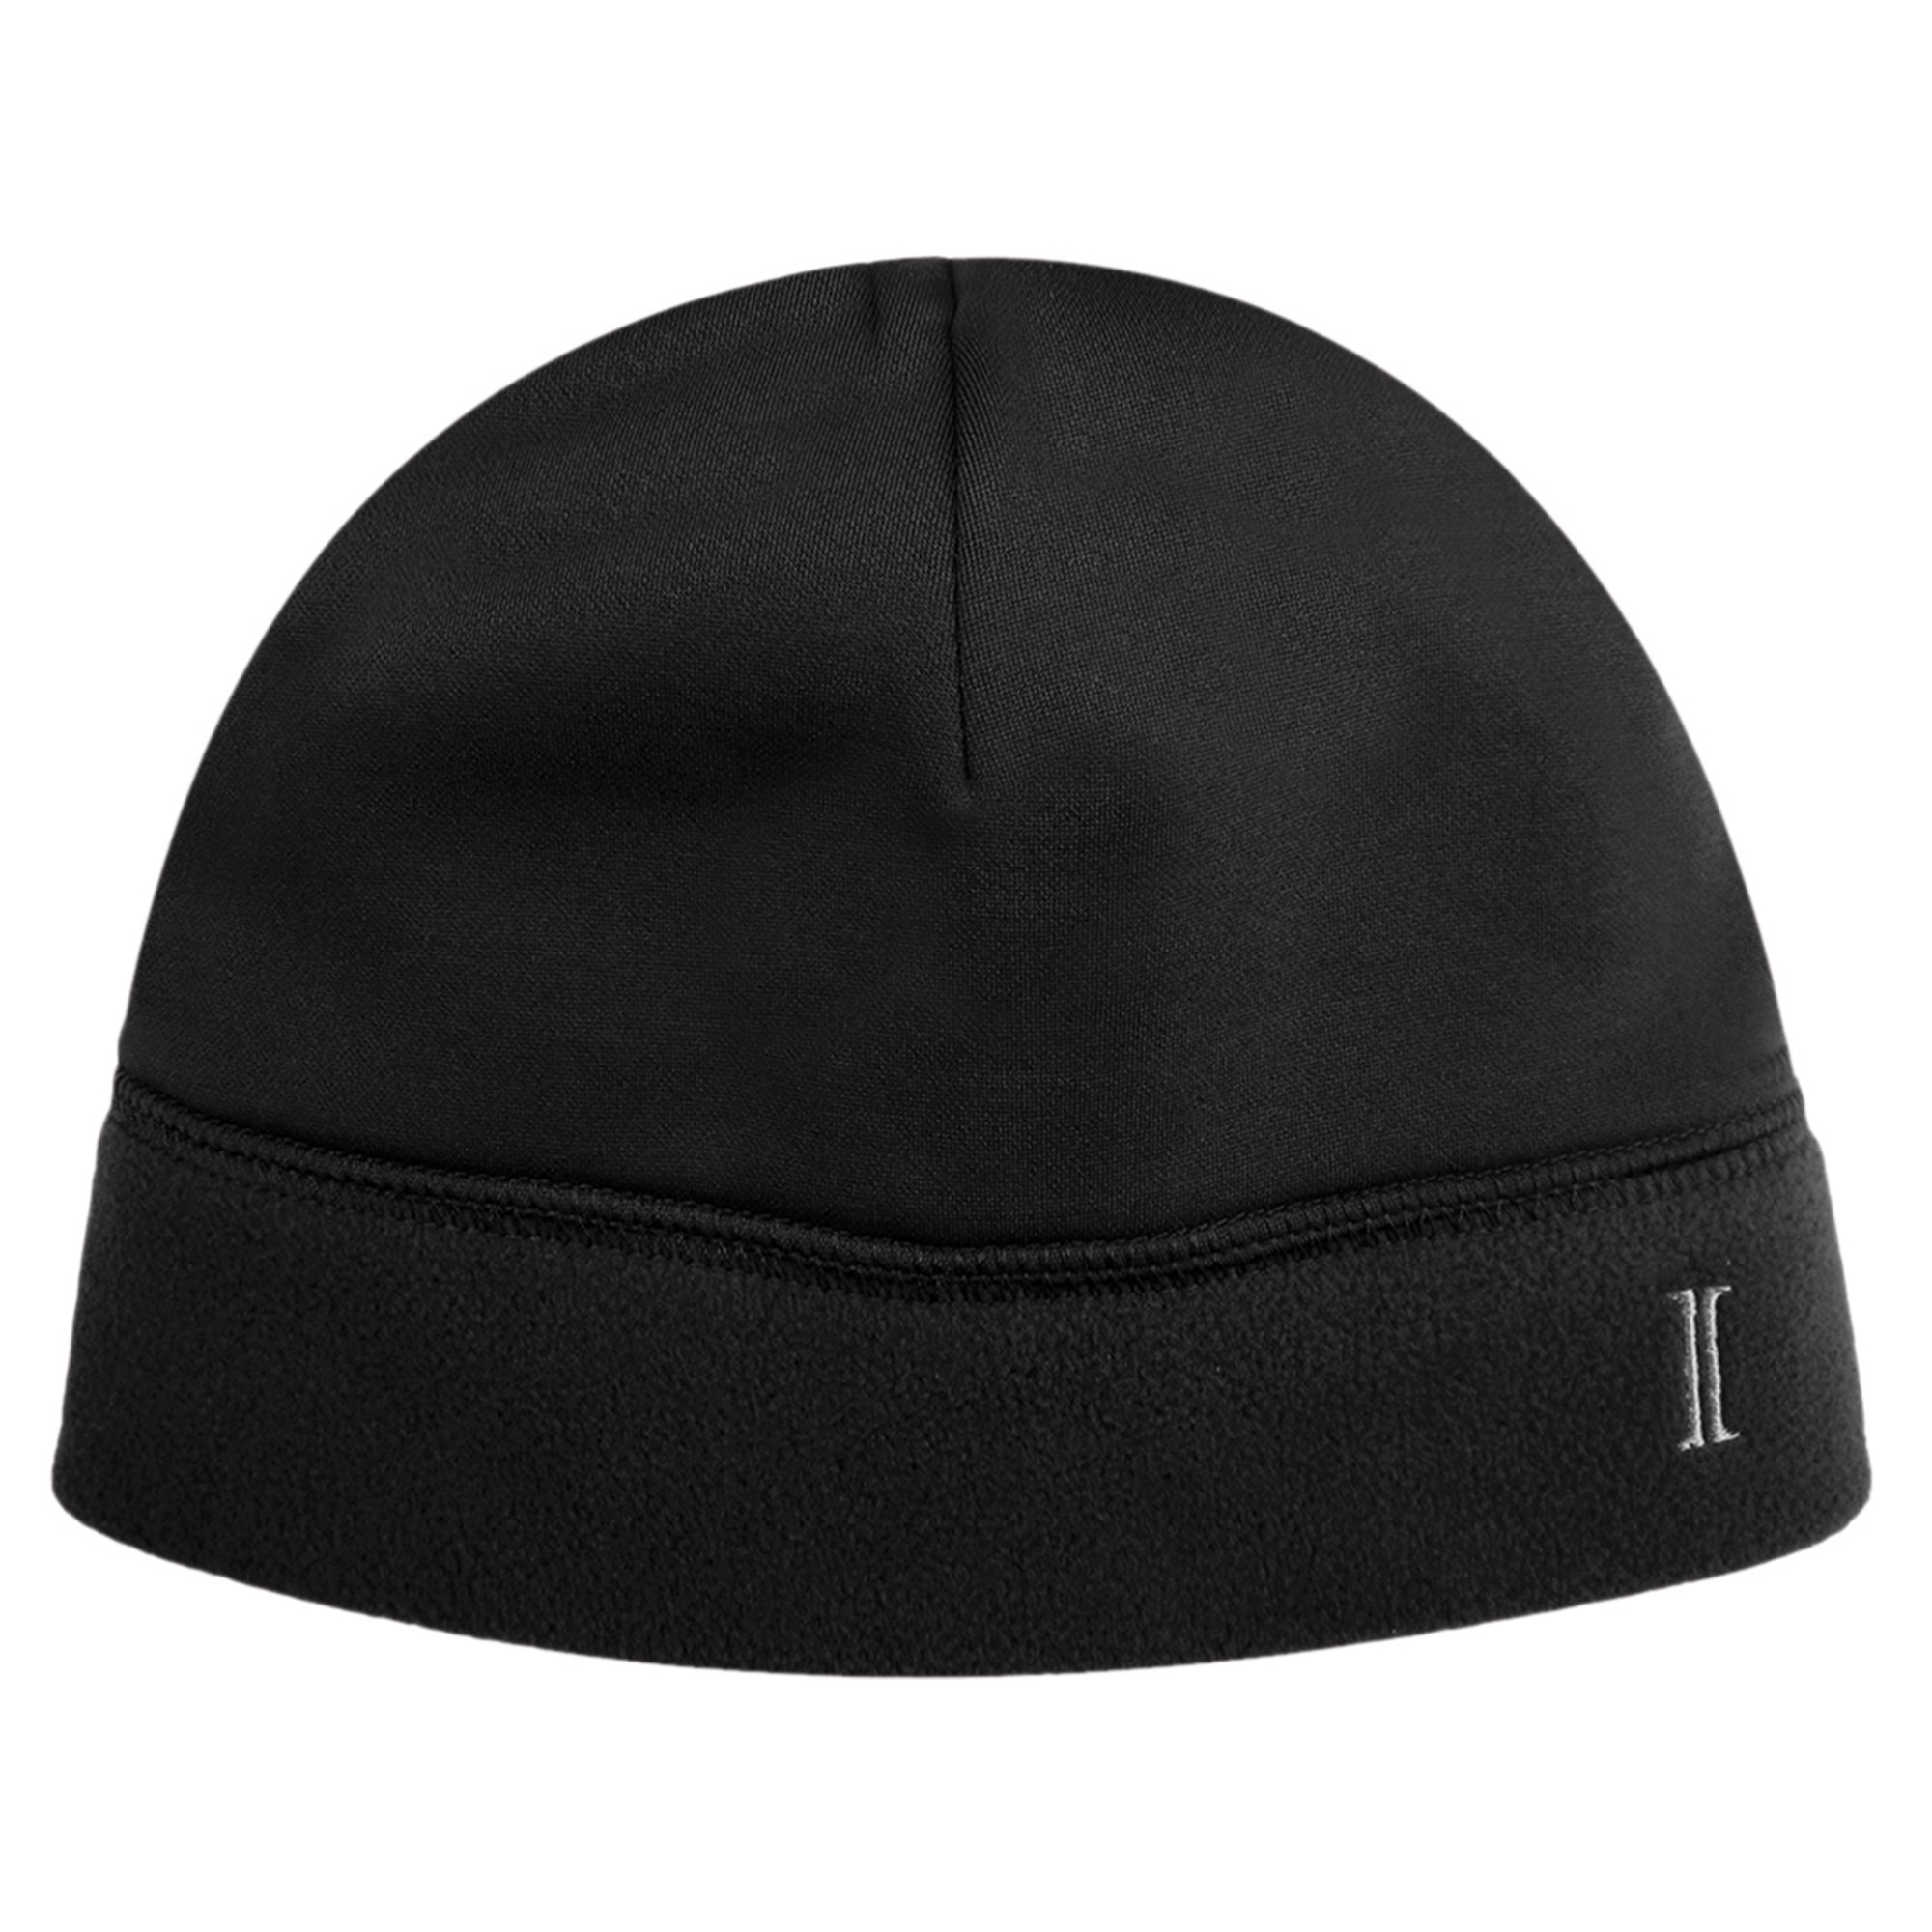 Buy Igloos Mens Softshell Fleece Beanie in Cheap Price on Alibaba.com b65ef4d81242